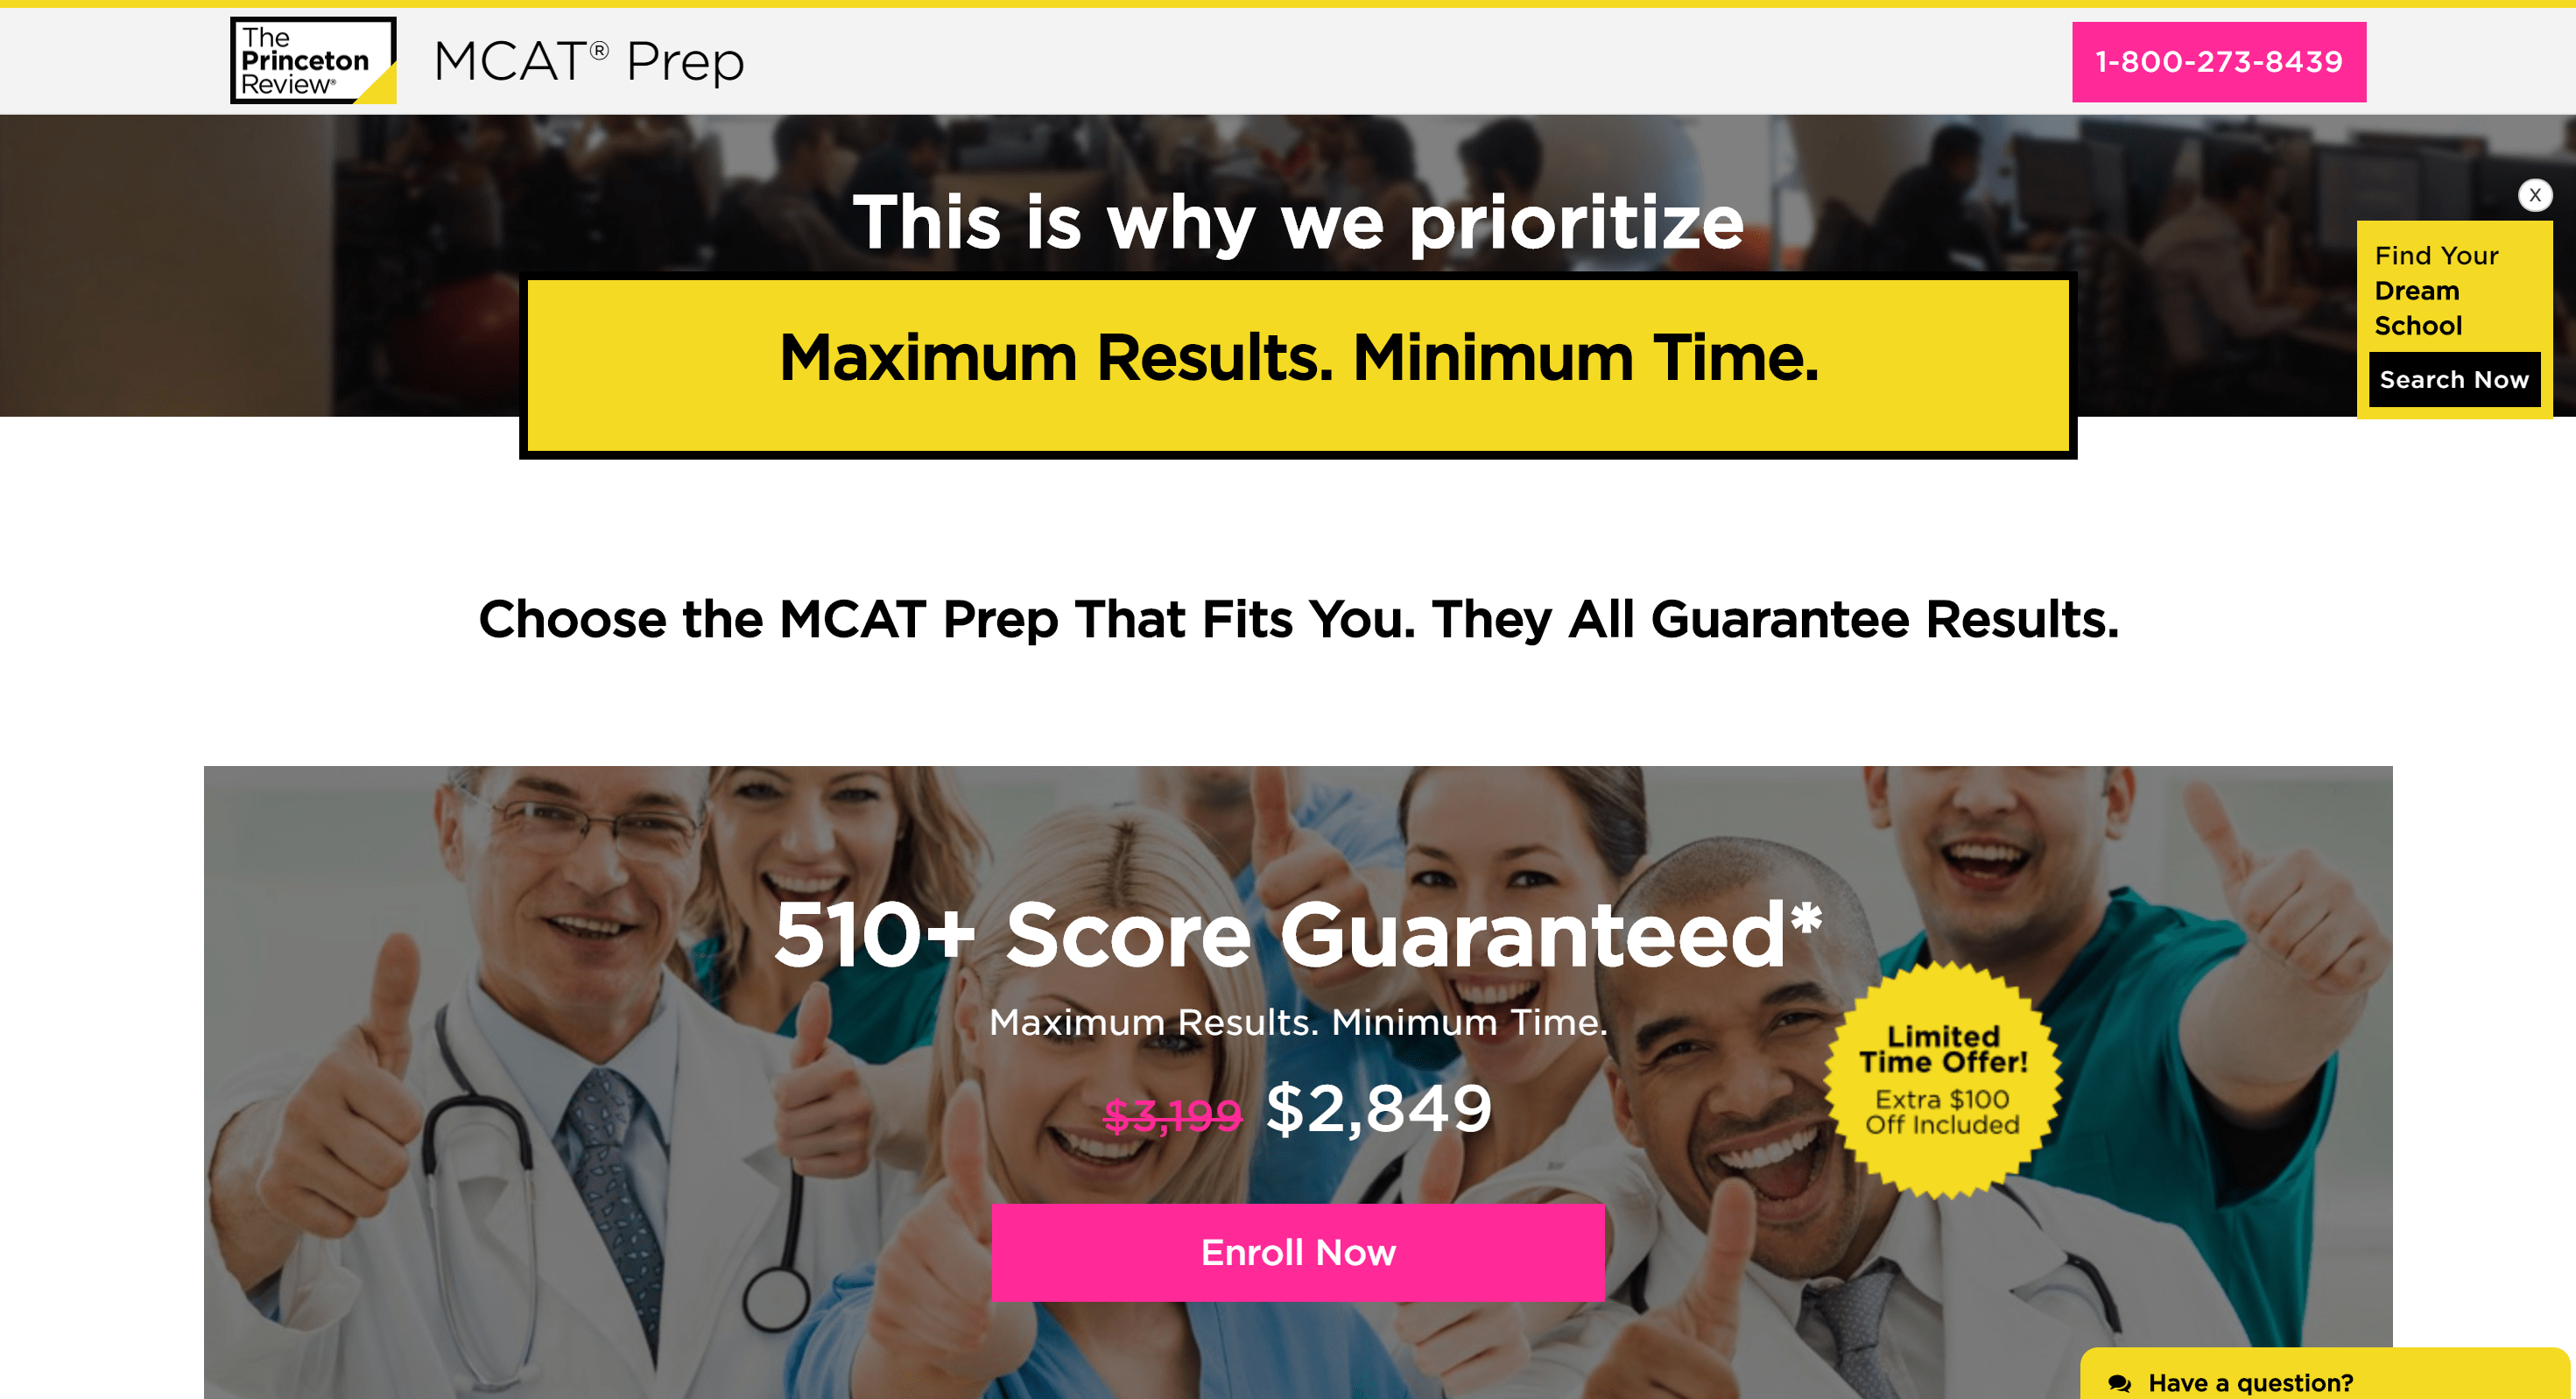 The princeton for MCAT